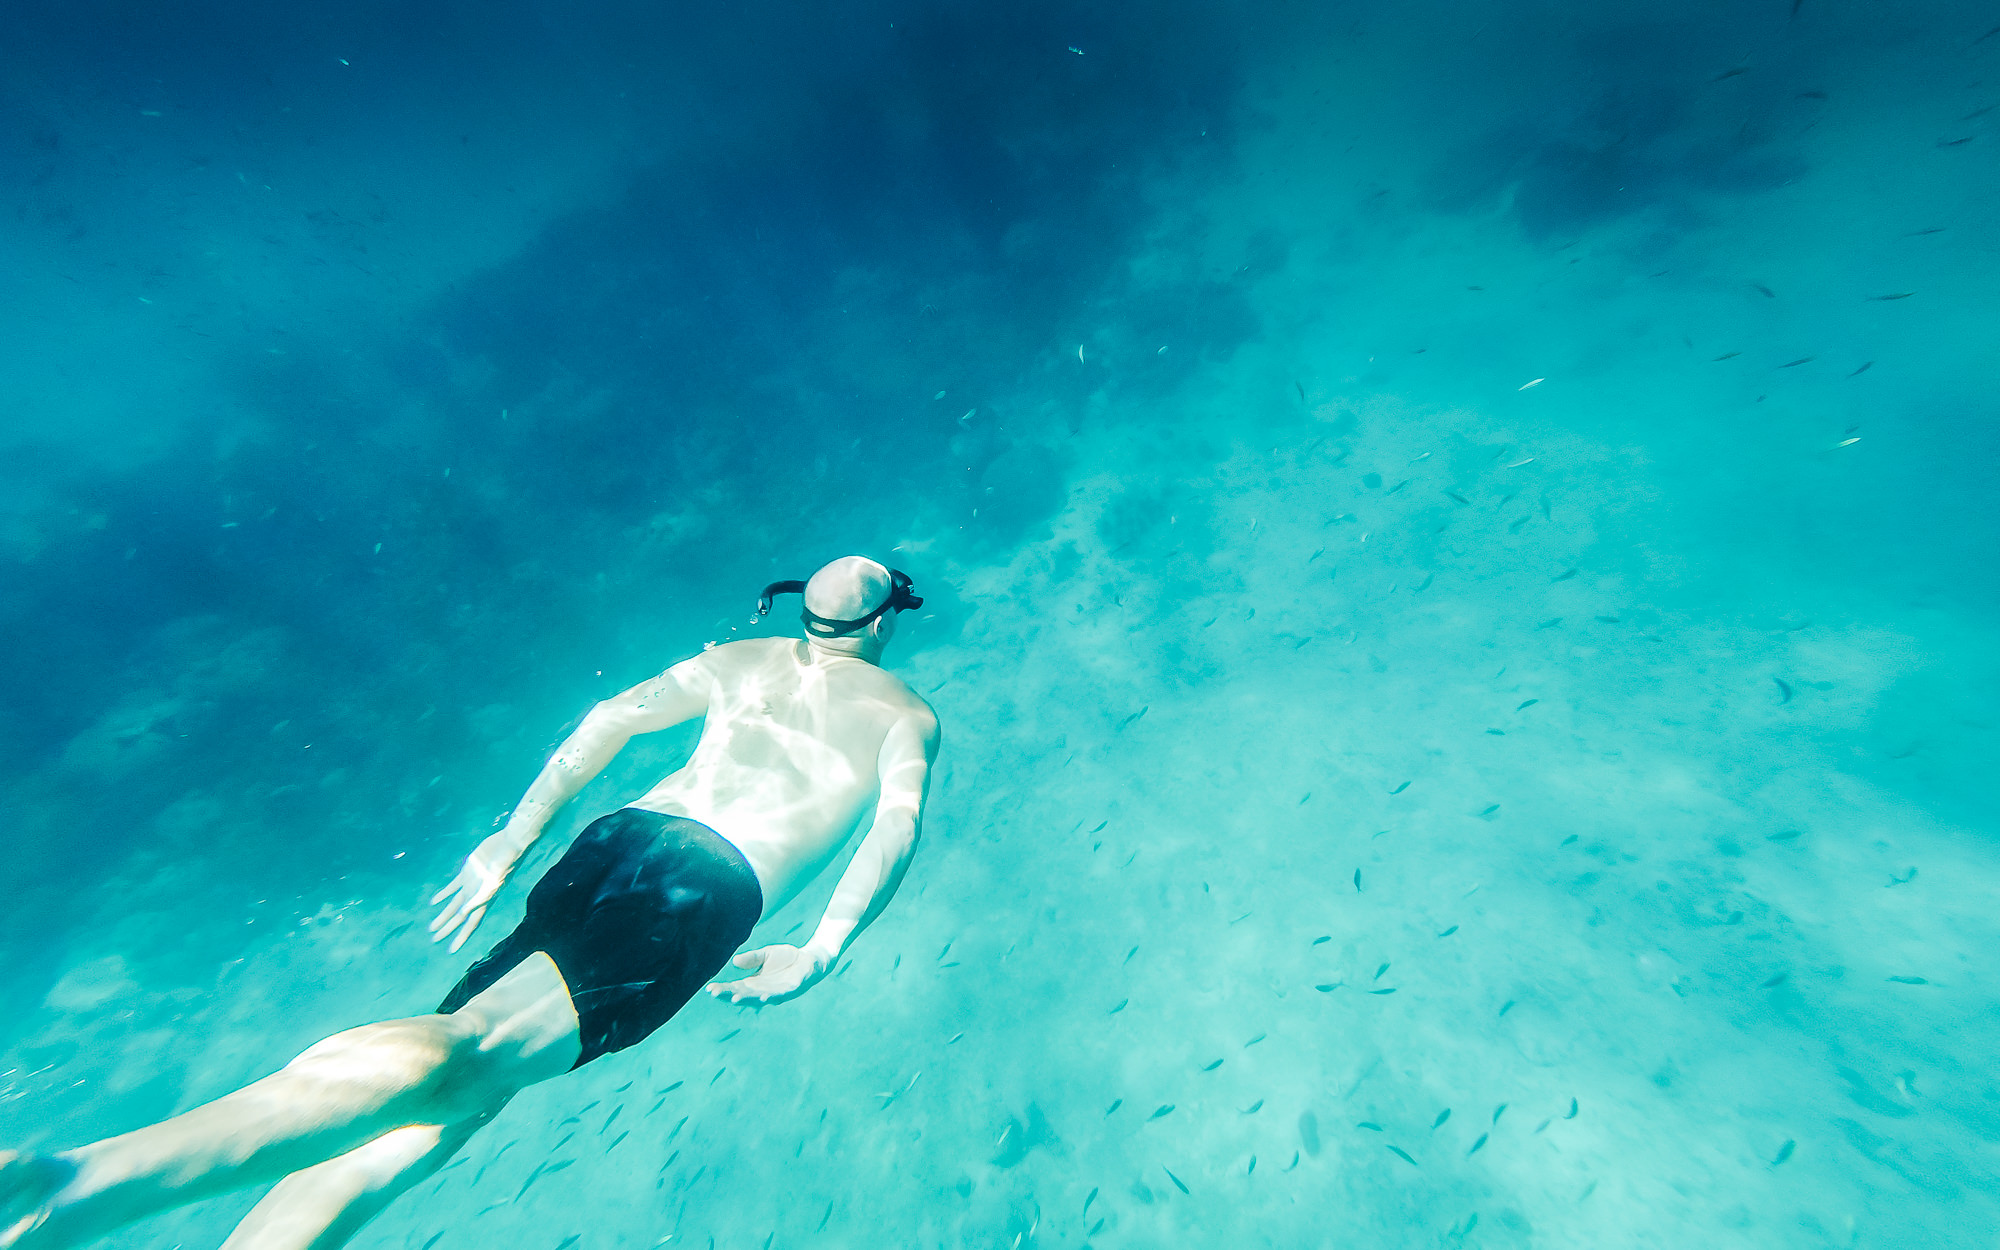 A glimpse of what was underwater at Phi Phi Islands